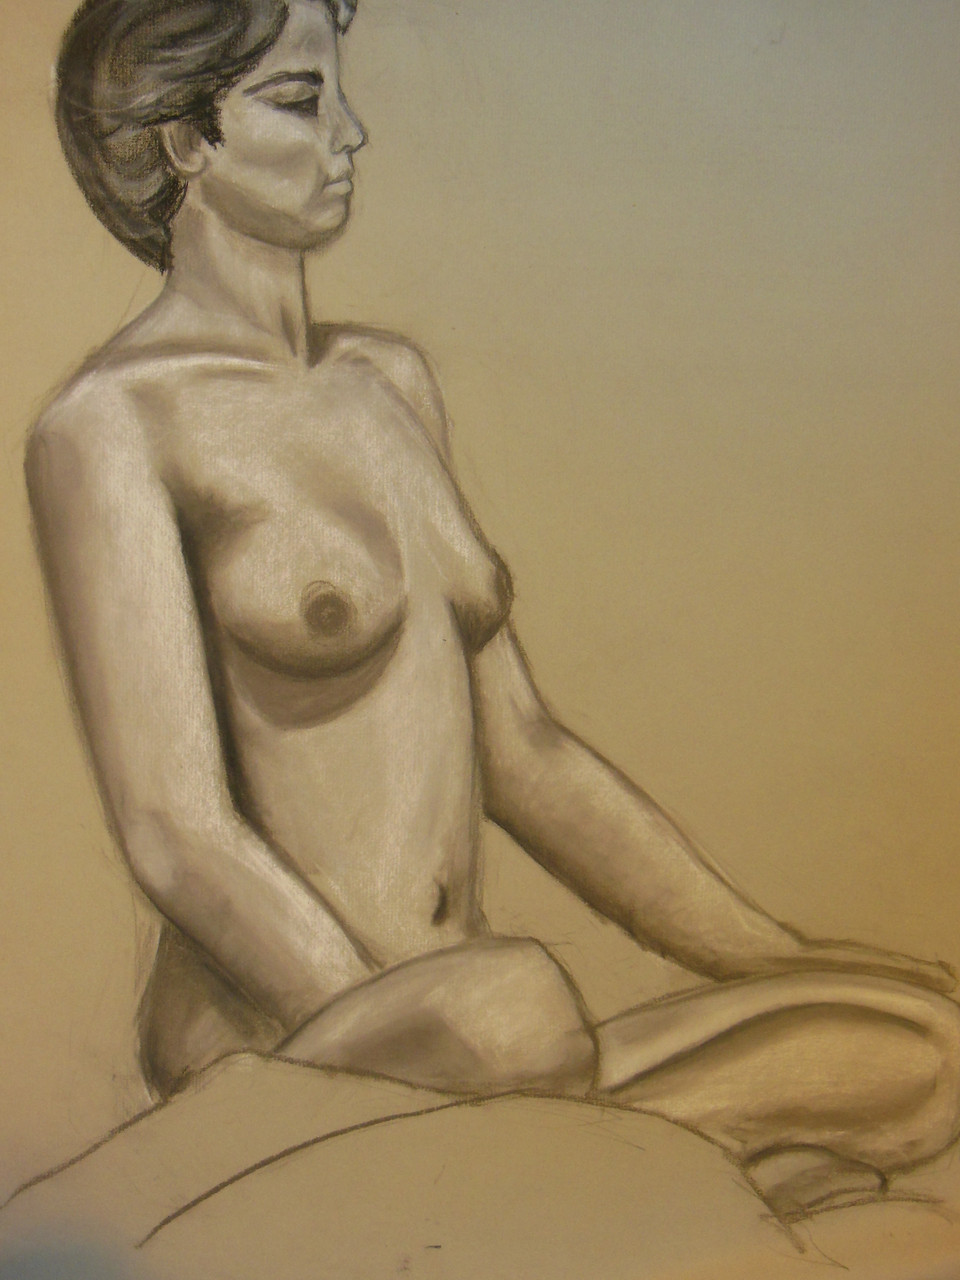 Nude Drawing: Charcoal & pastel on grey paper. 15